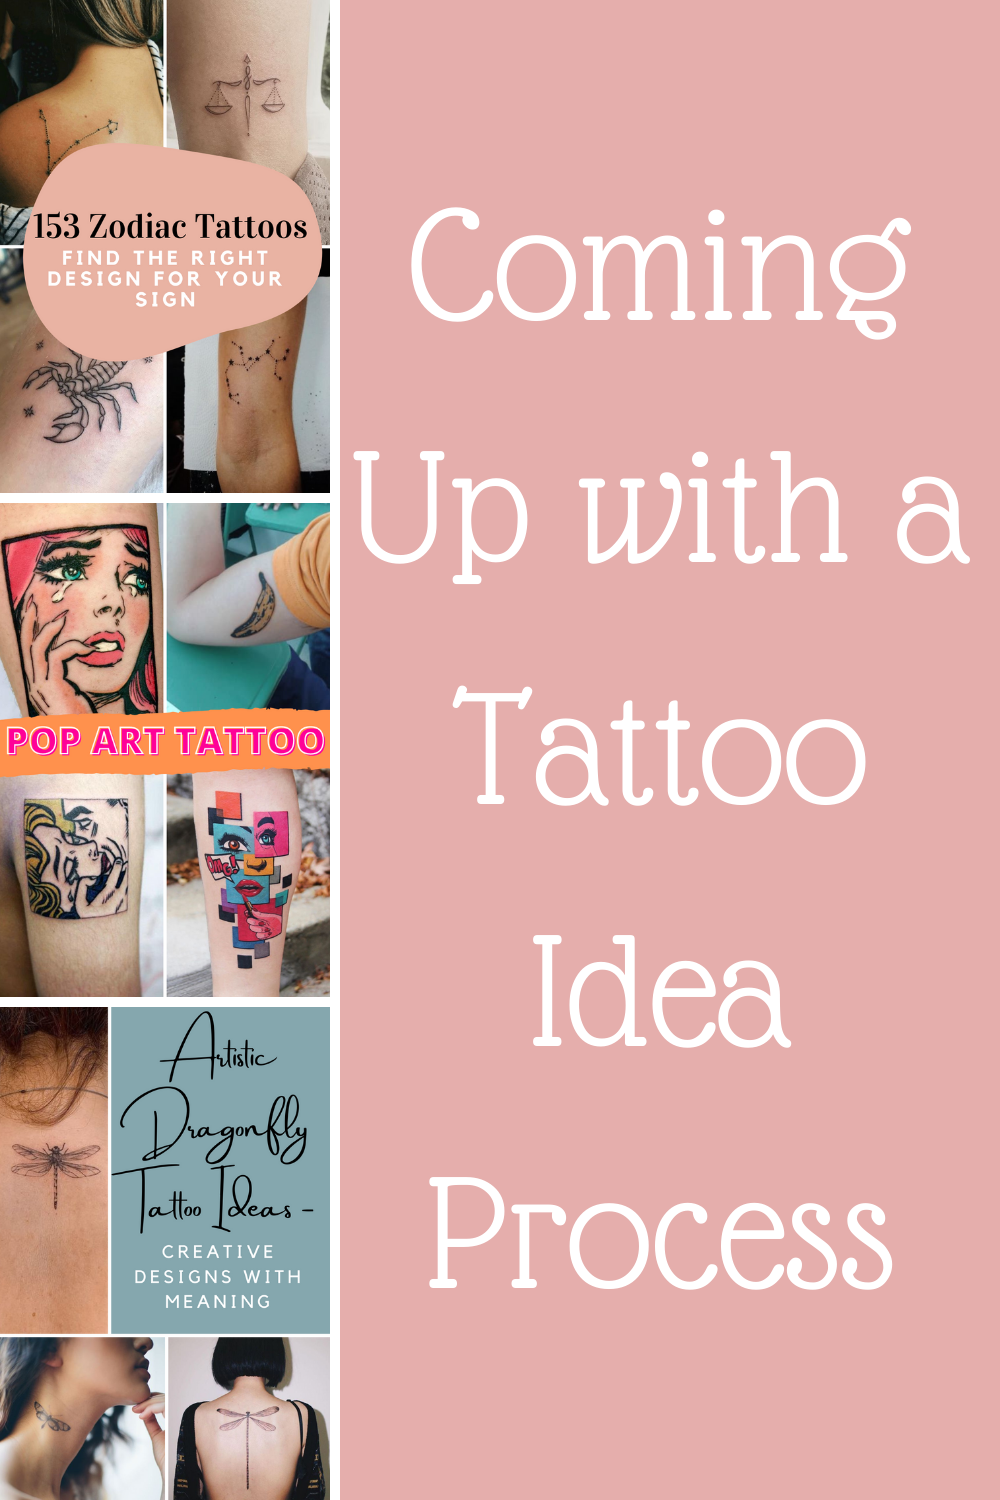 Process tips for designing your own tattoo